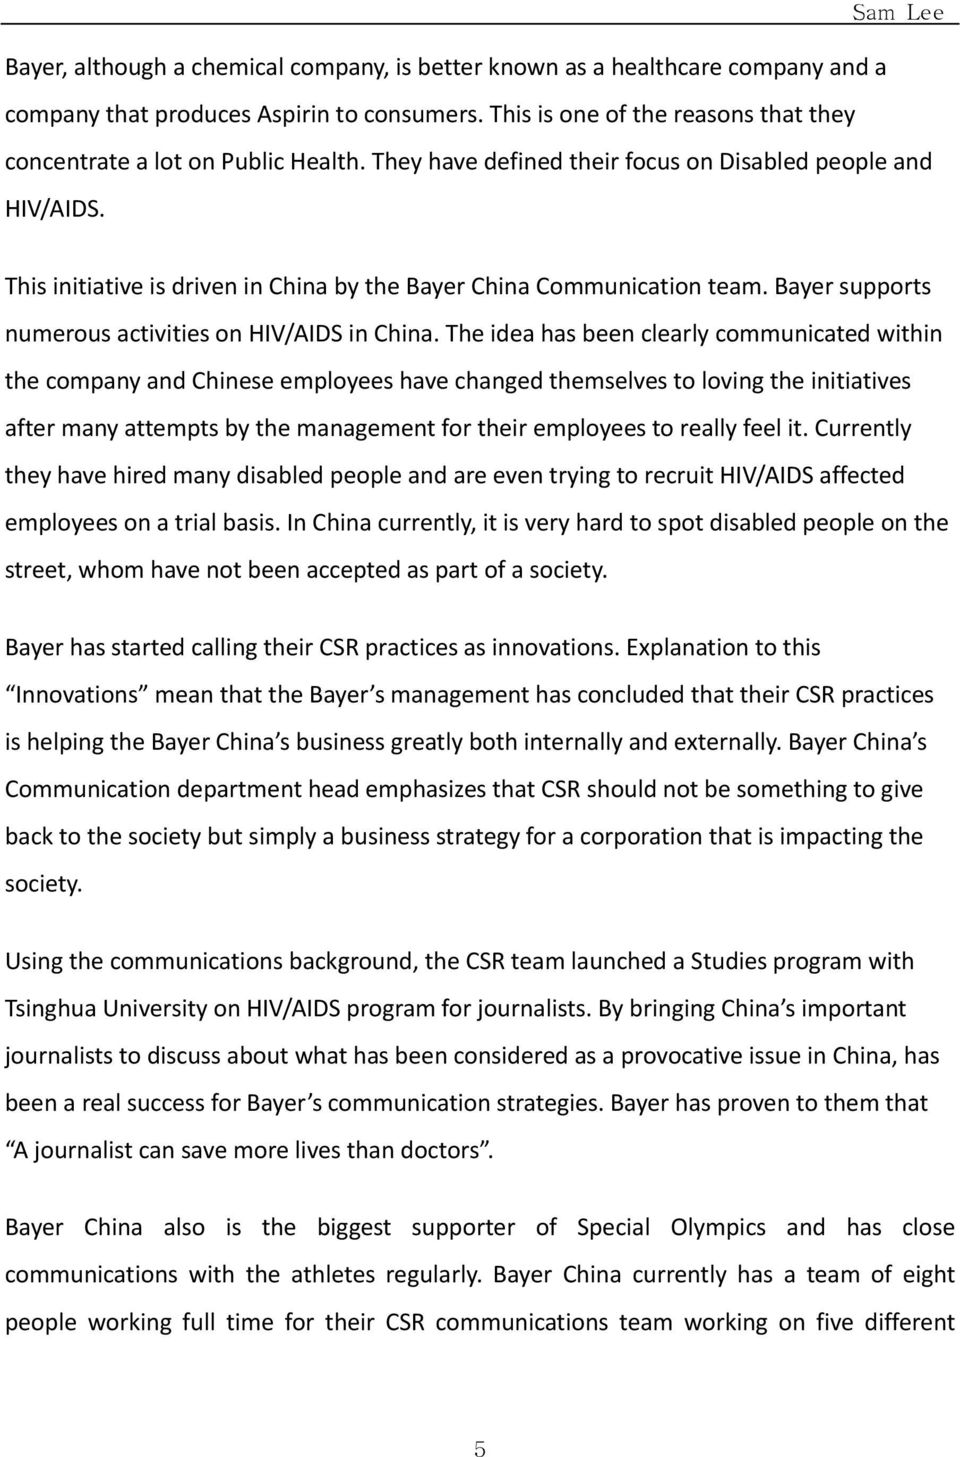 The idea has been clearly communicated within the company and Chinese employees have changed themselves to loving the initiatives after many attempts by the management for their employees to really